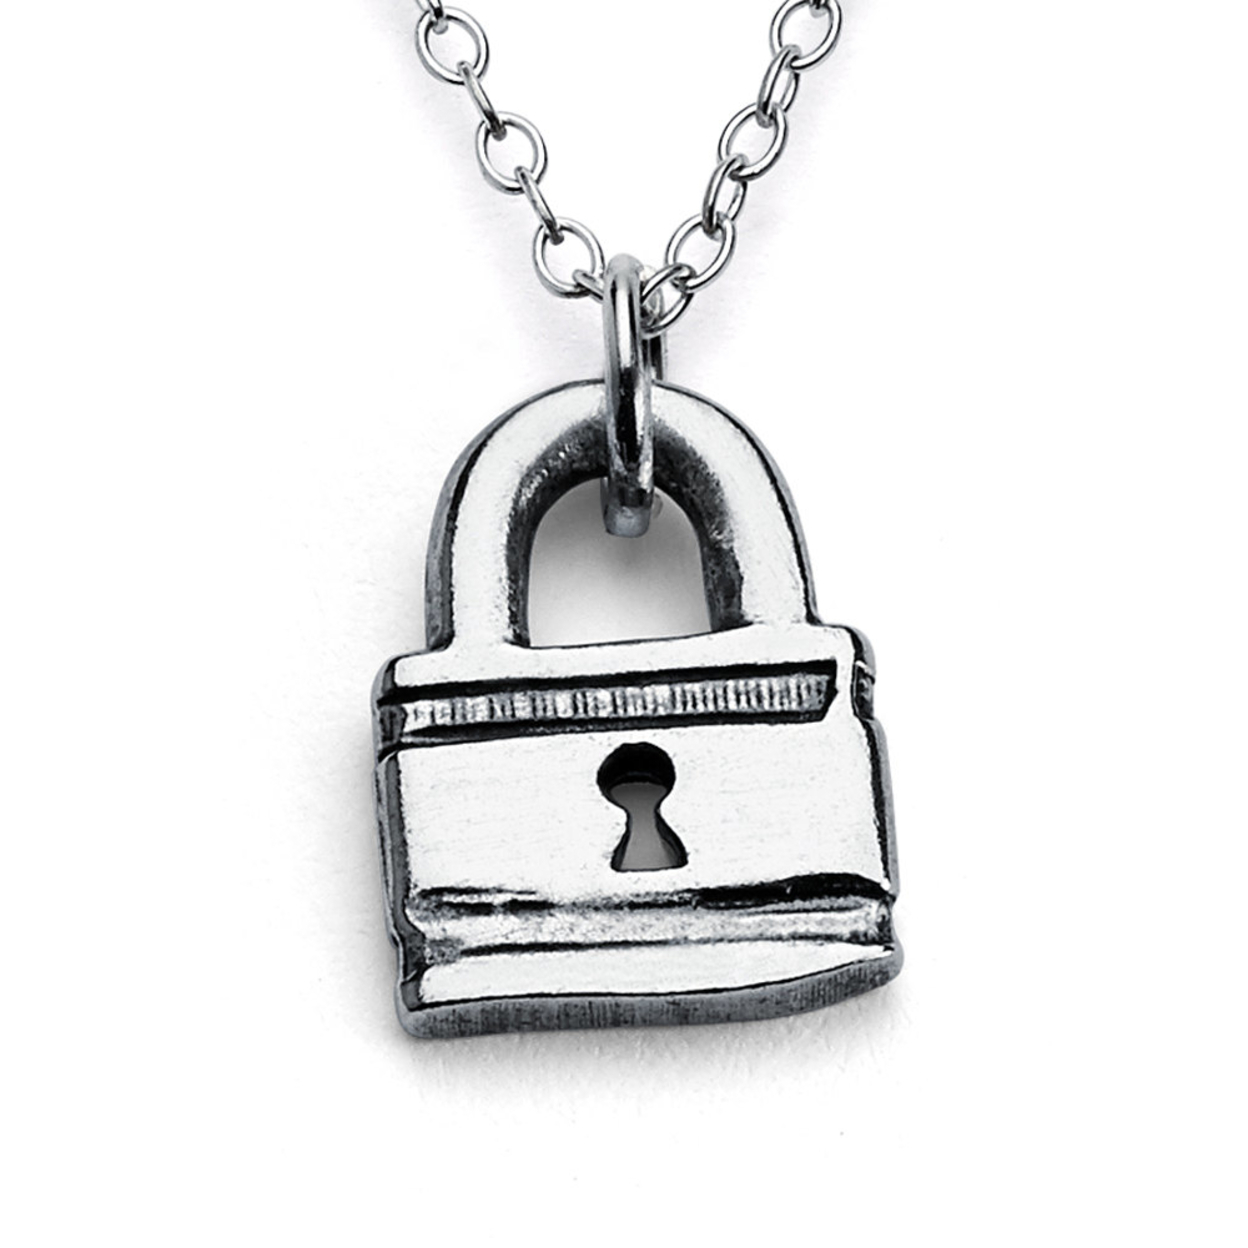 Little Love Lock Padlock Romantic Sweethearts Double Sided Charm Pendant Necklace #925 Sterling Silver #azaggi N0014s 12 Child